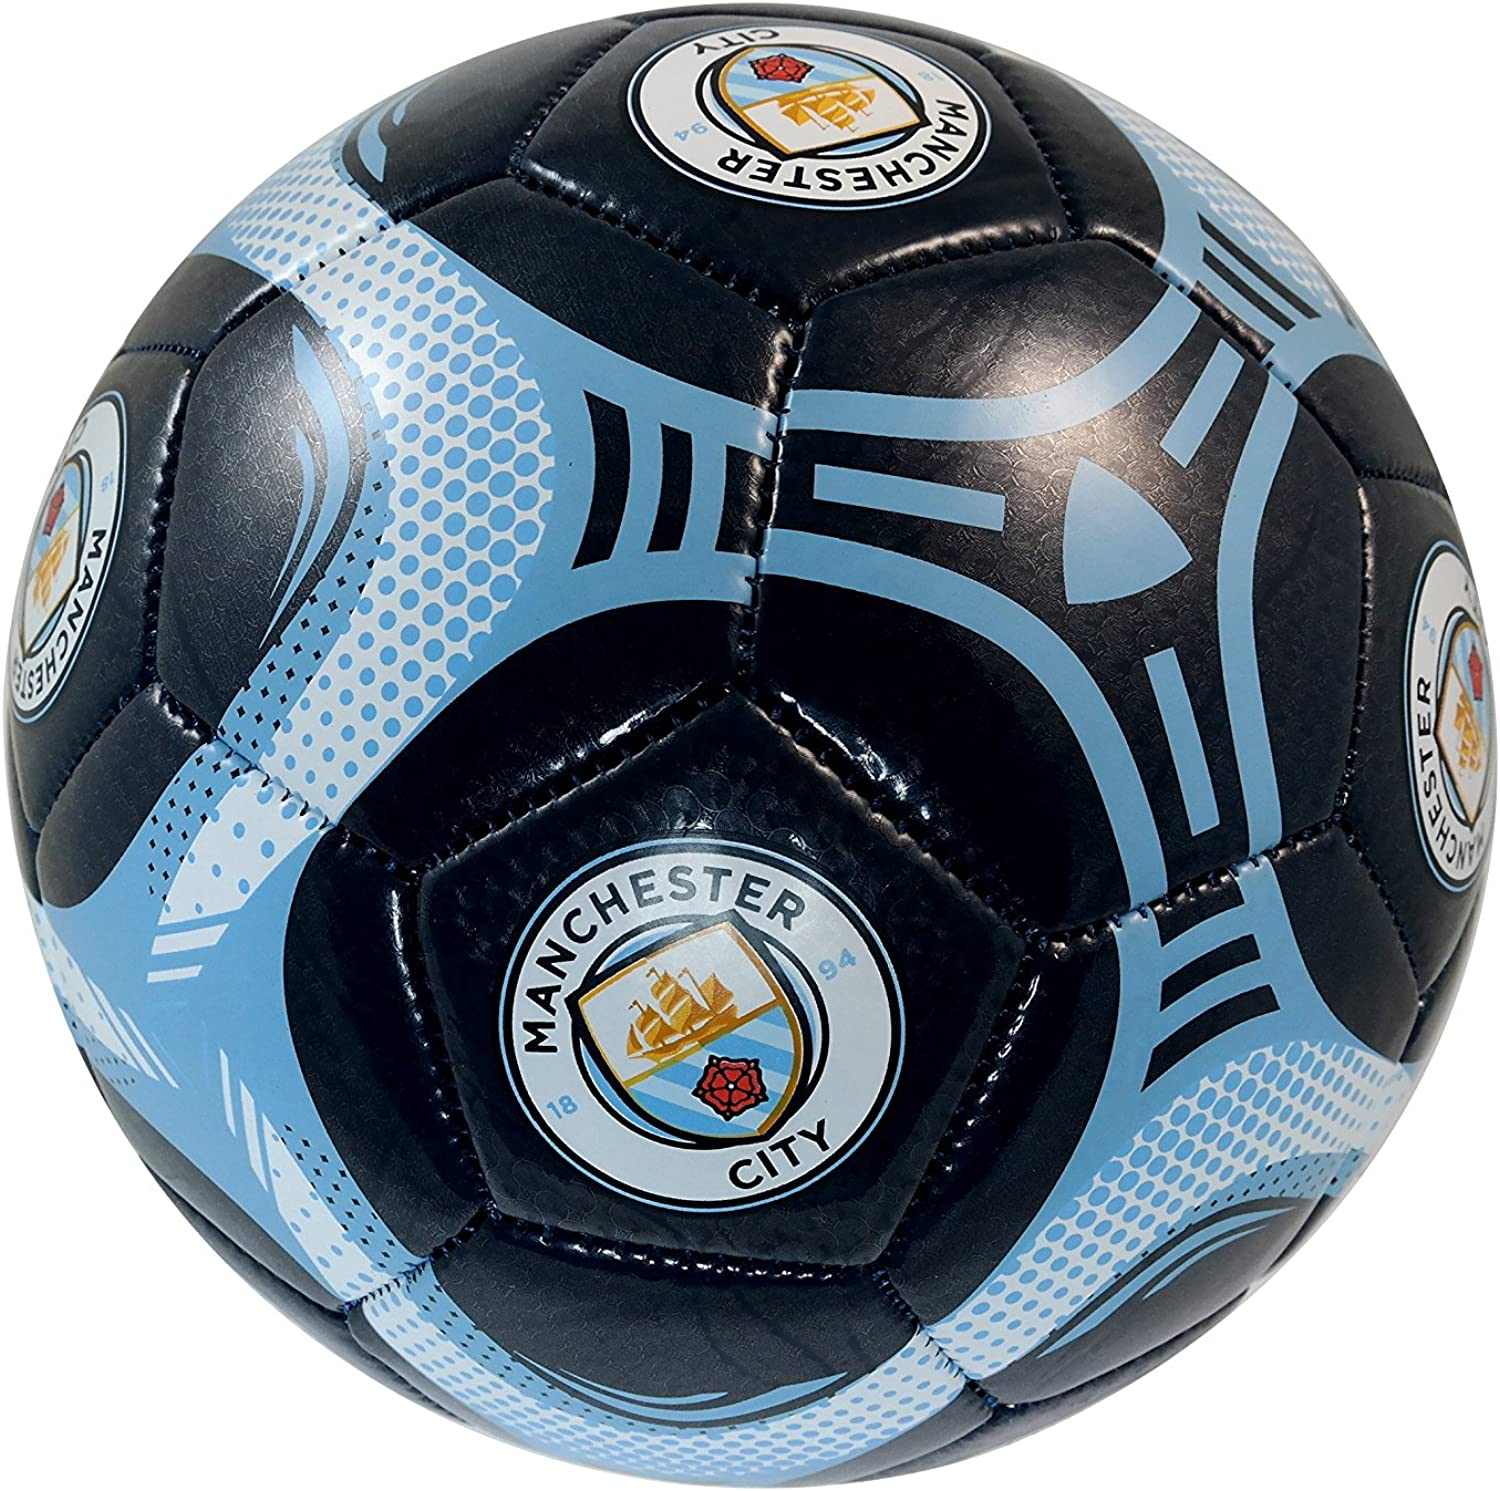 Manchester City F.C Authentic Official Licensed Soccer Ball Size 5-09